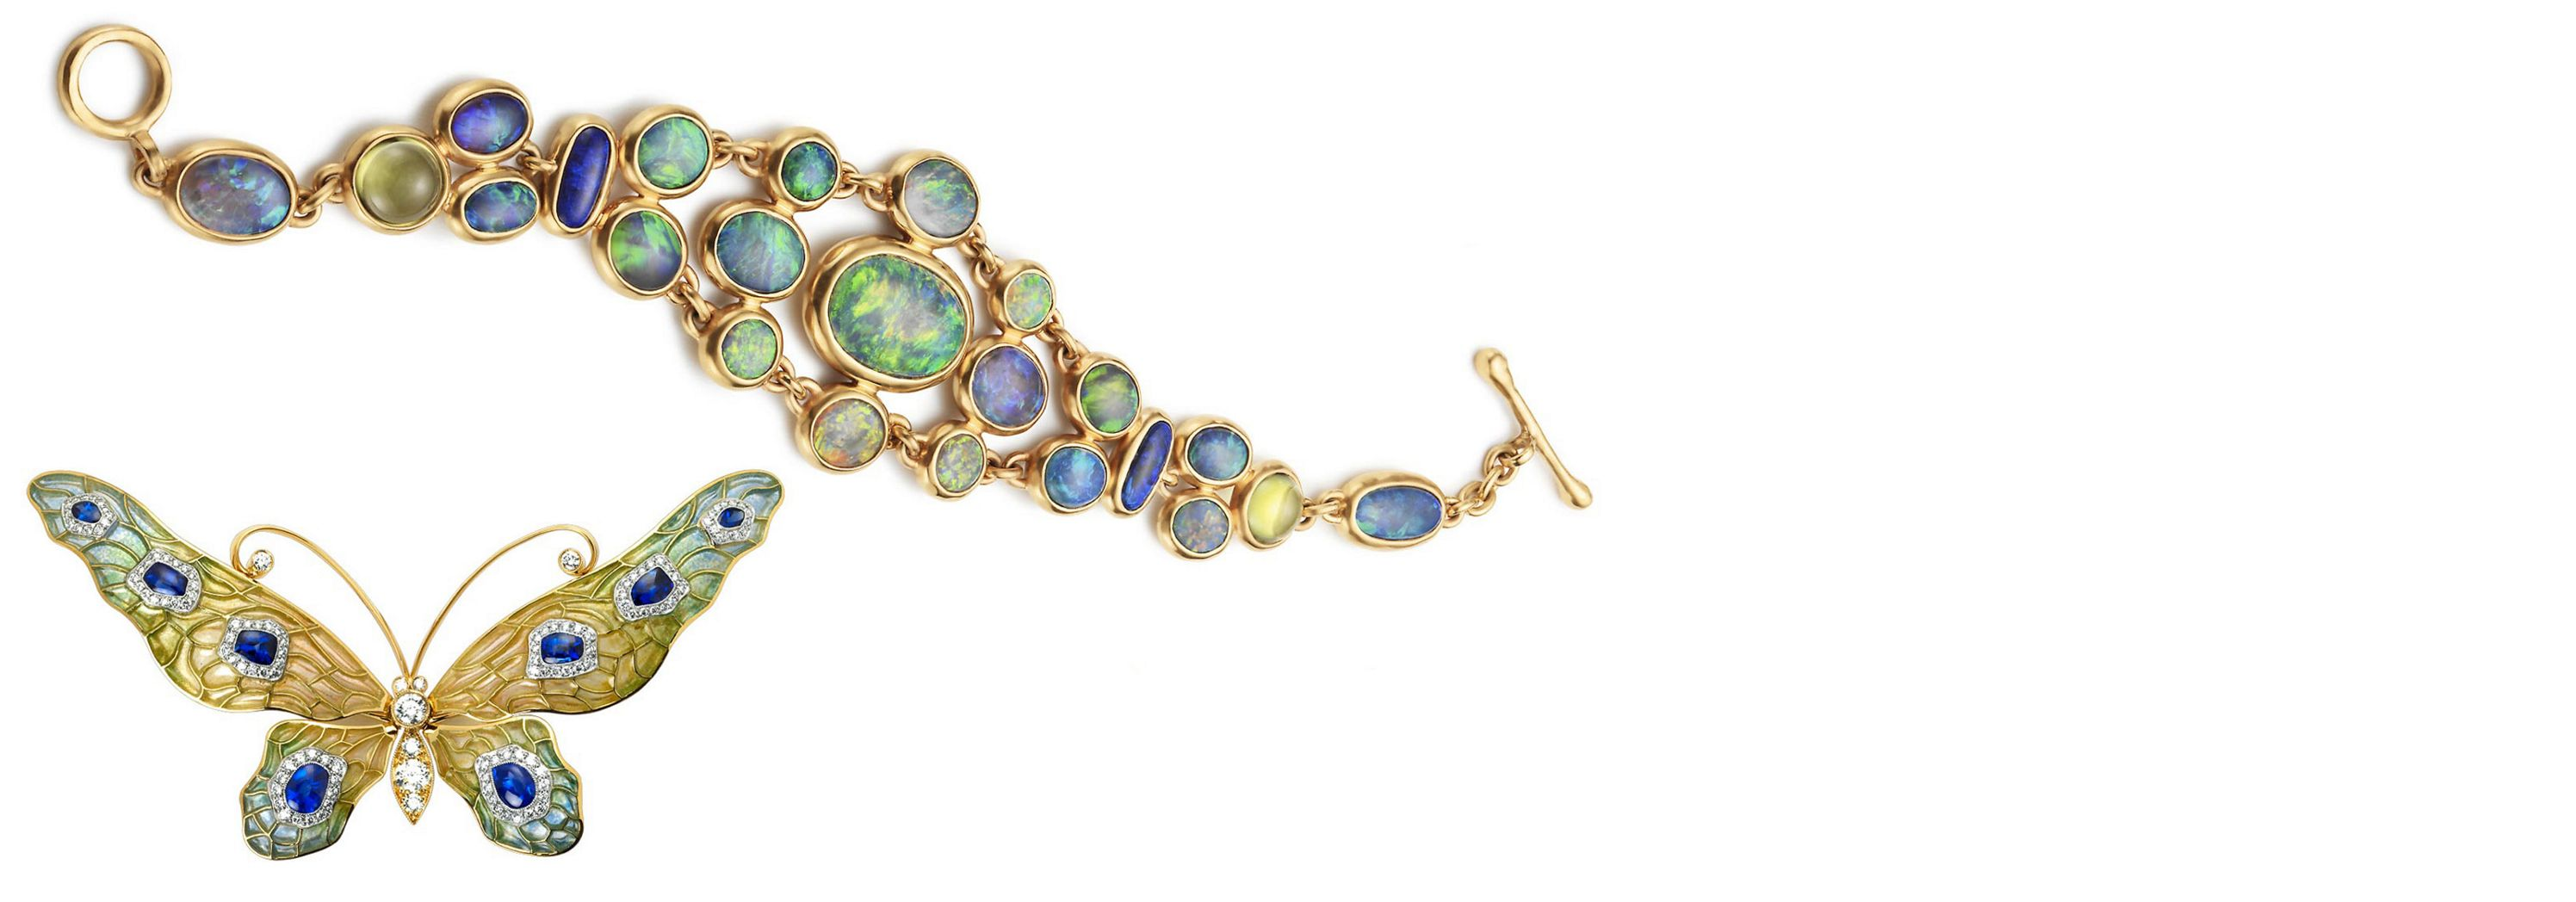 2a8c6630c When Charles Tiffany died in 1902, LCT was appointed the company's first  design director. In this role, he established the Tiffany Artistic Jewelry  ...